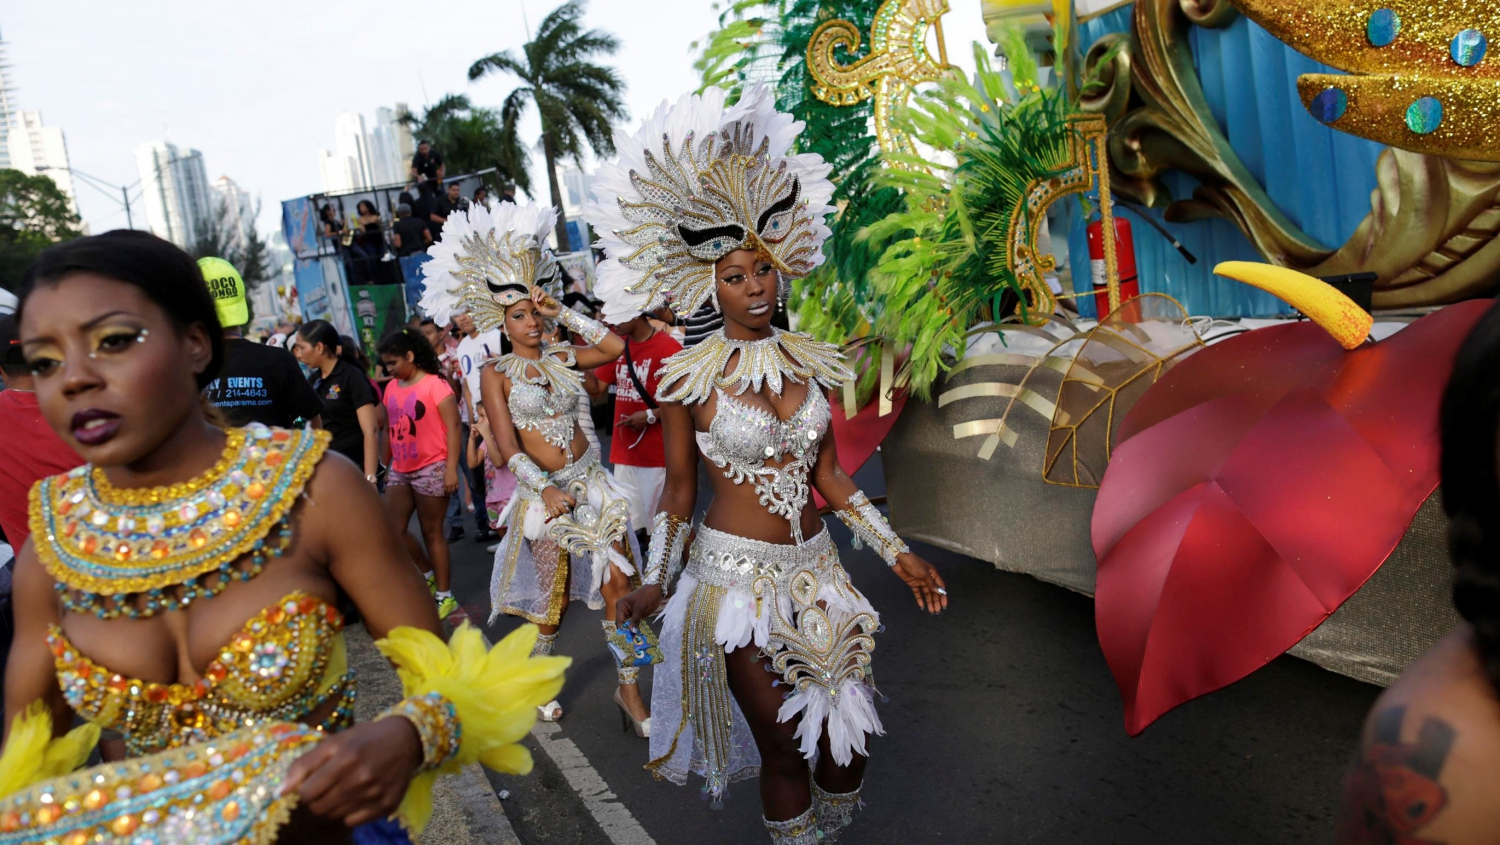 Panama will invest $ 2.2 million in the Carnival of 2019